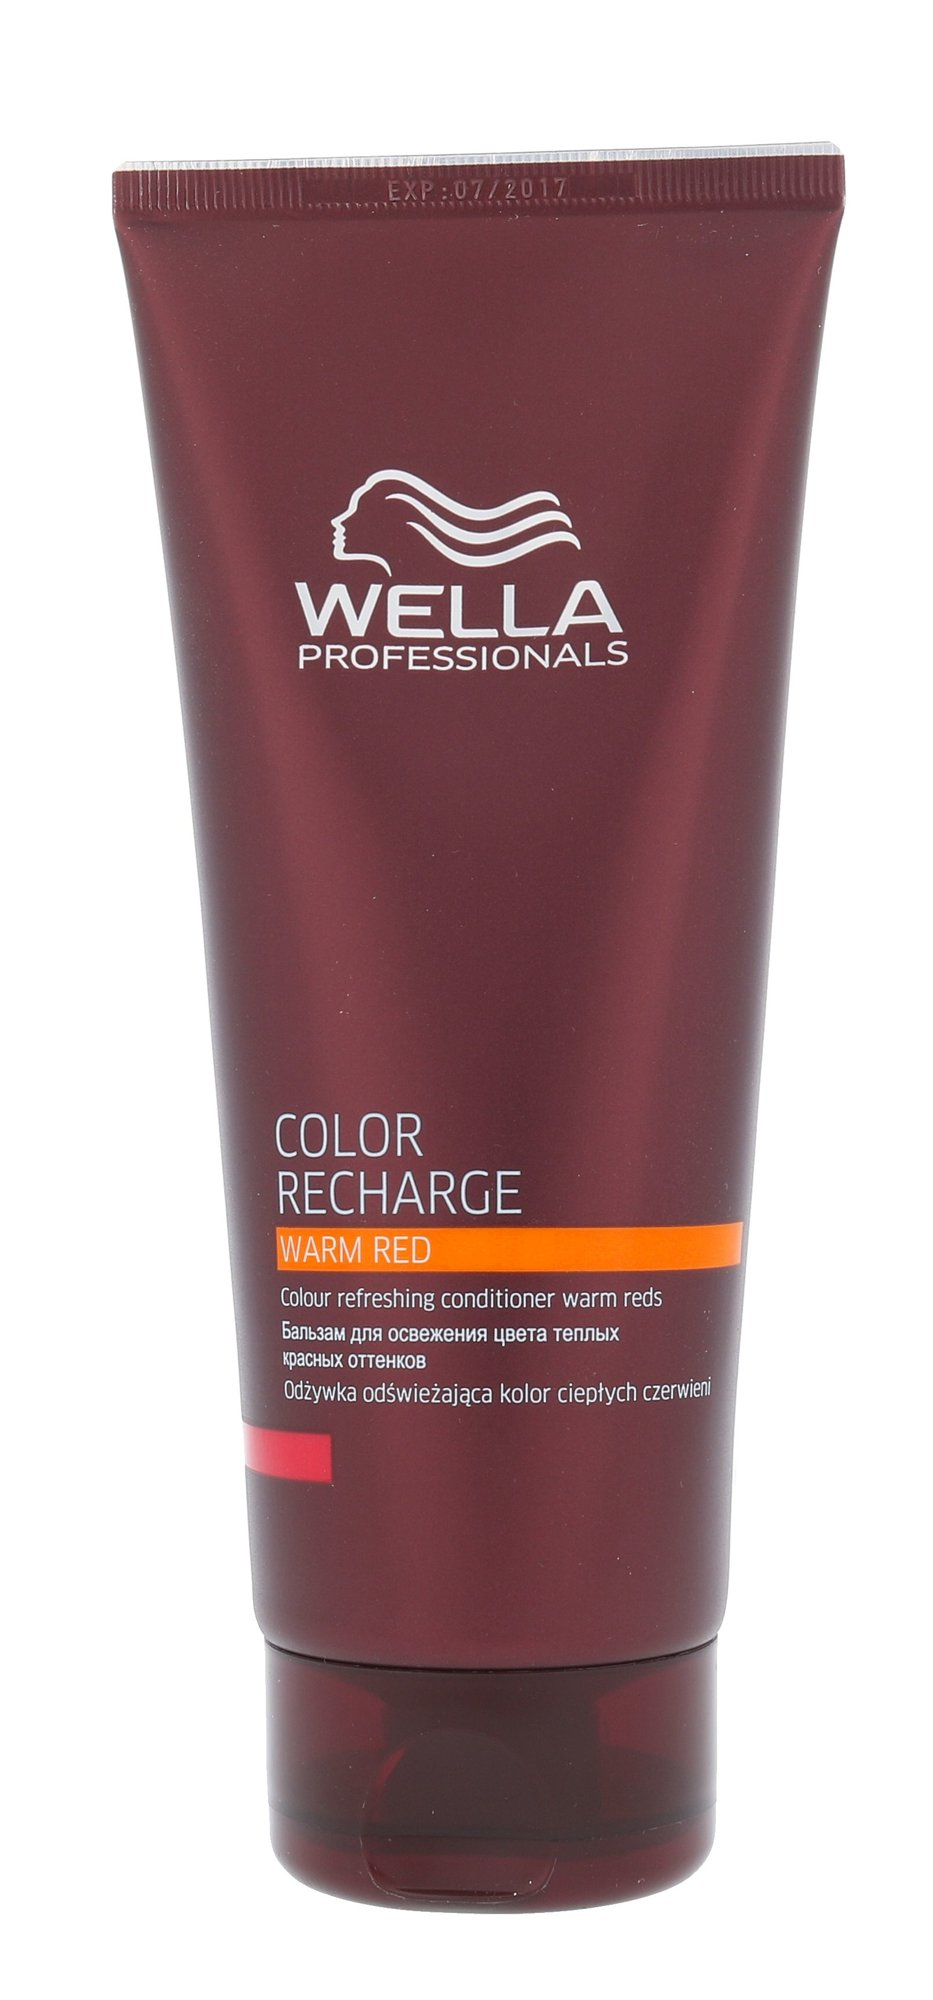 Wella Color Recharge Cosmetic 200ml